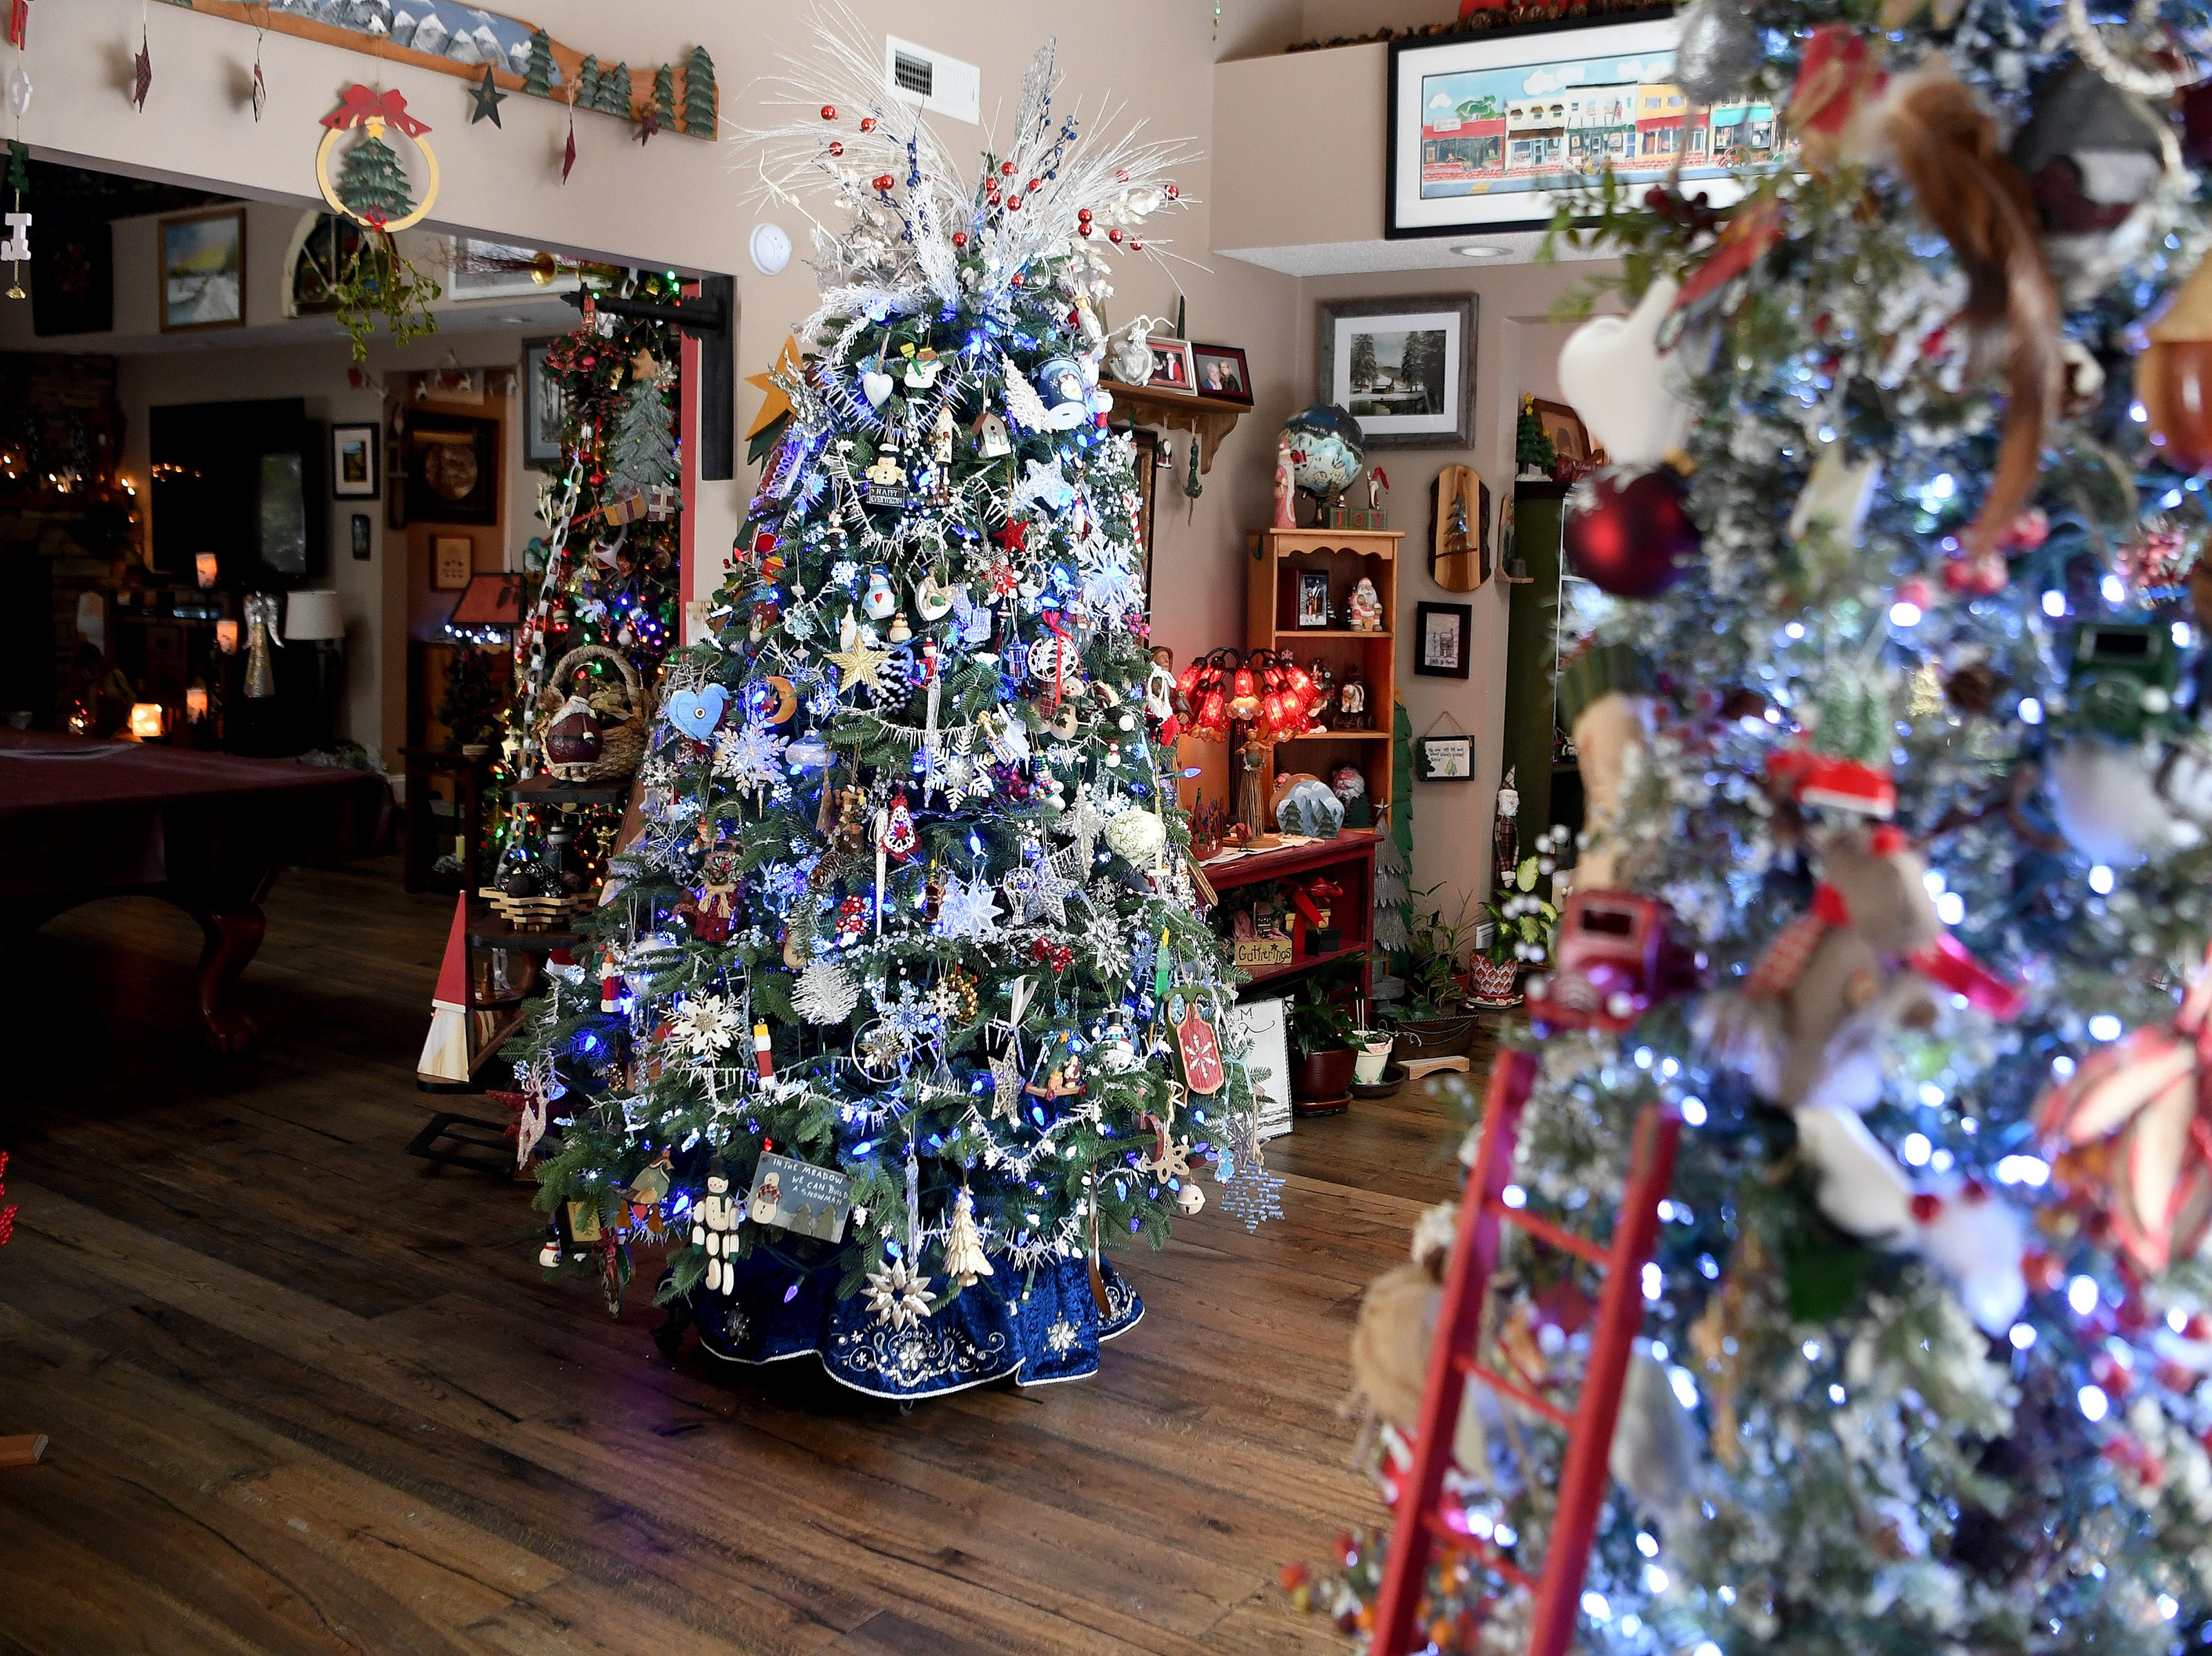 Phyllis and Dave Bryan elaborate decorate their house for Christmas each year with a total of five large trees and several other smaller trees. Each year they invite their friends over for a grand party to enjoy a meal and their decorations.